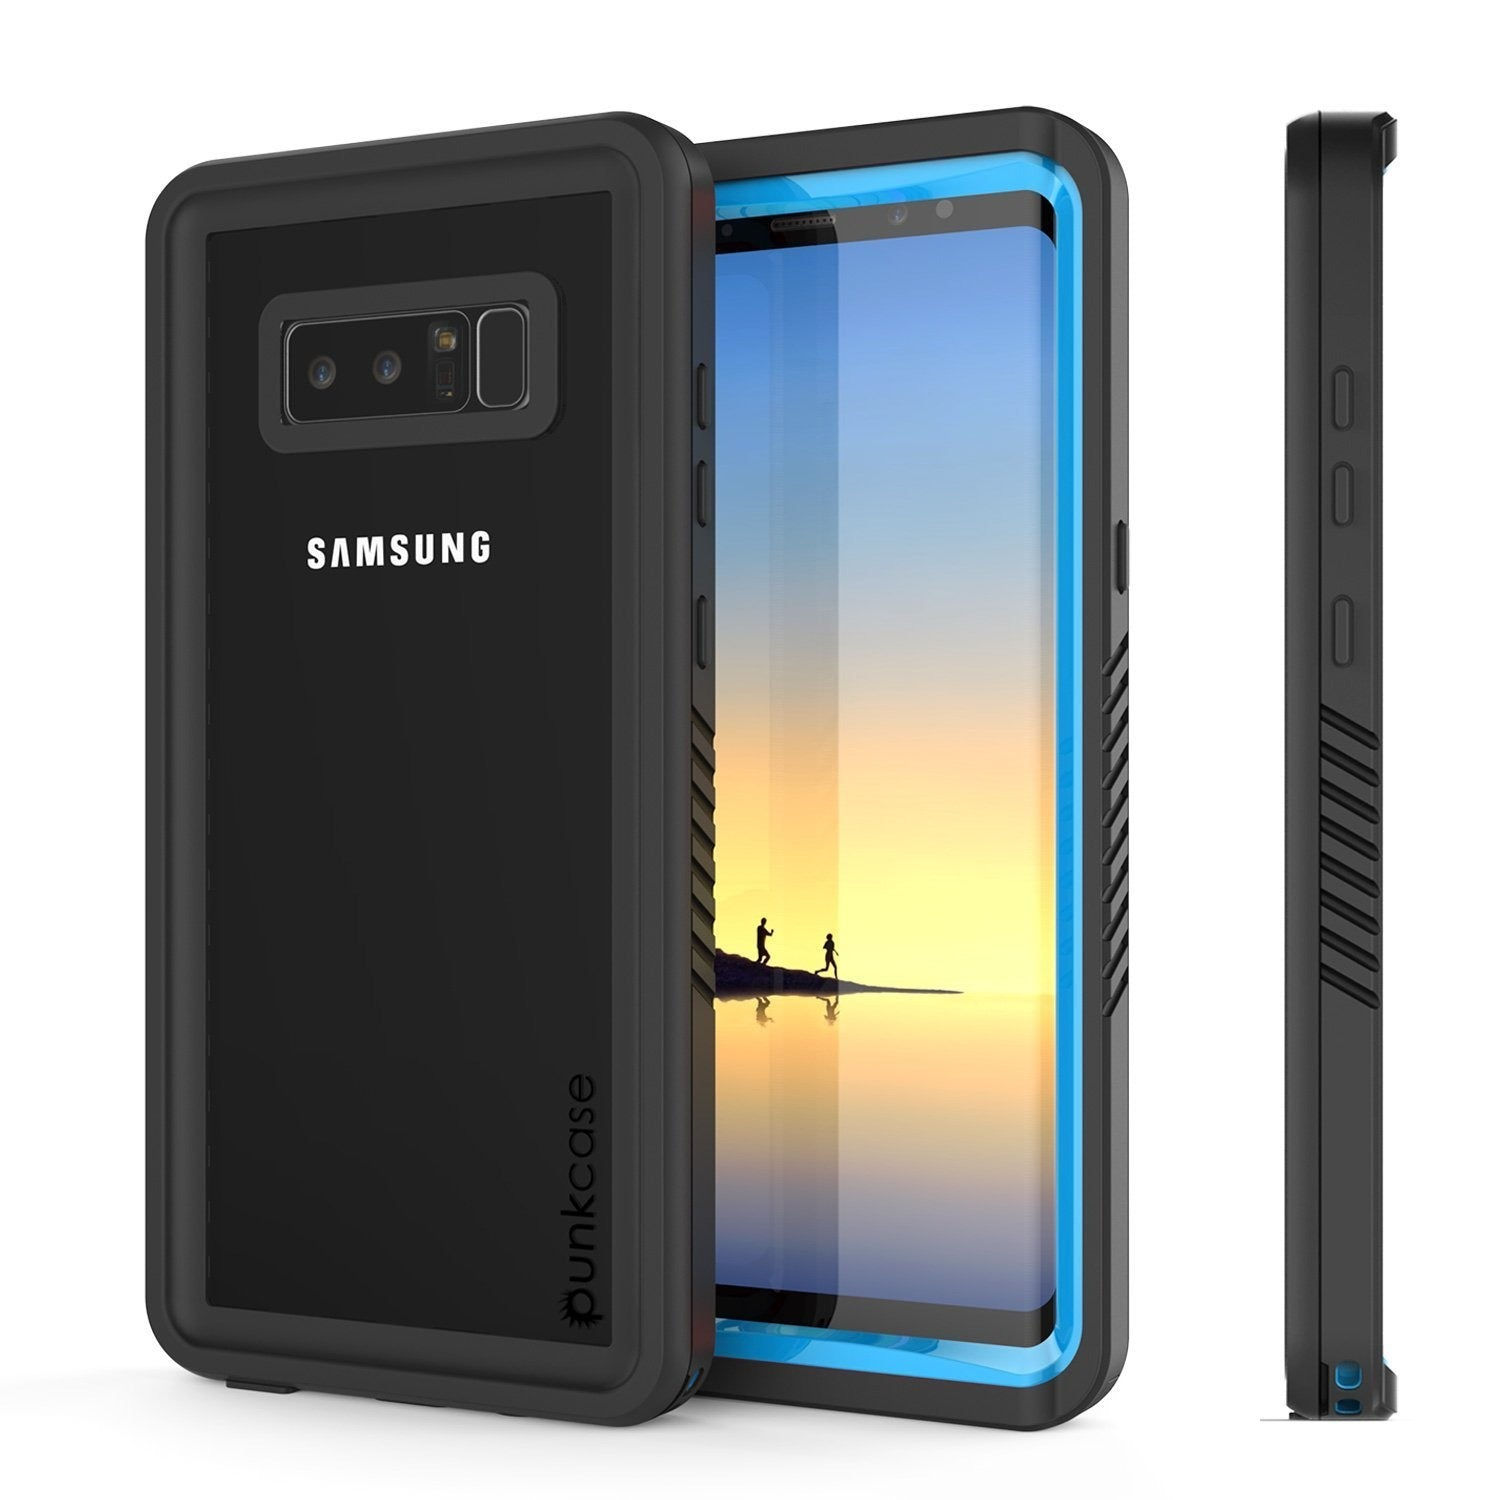 Galaxy Note 8 Case, Punkcase [Extreme Series] [Slim Fit] [IP68 Certified] [Shockproof] Armor Cover W/ Built In Screen Protector [Light Blue]